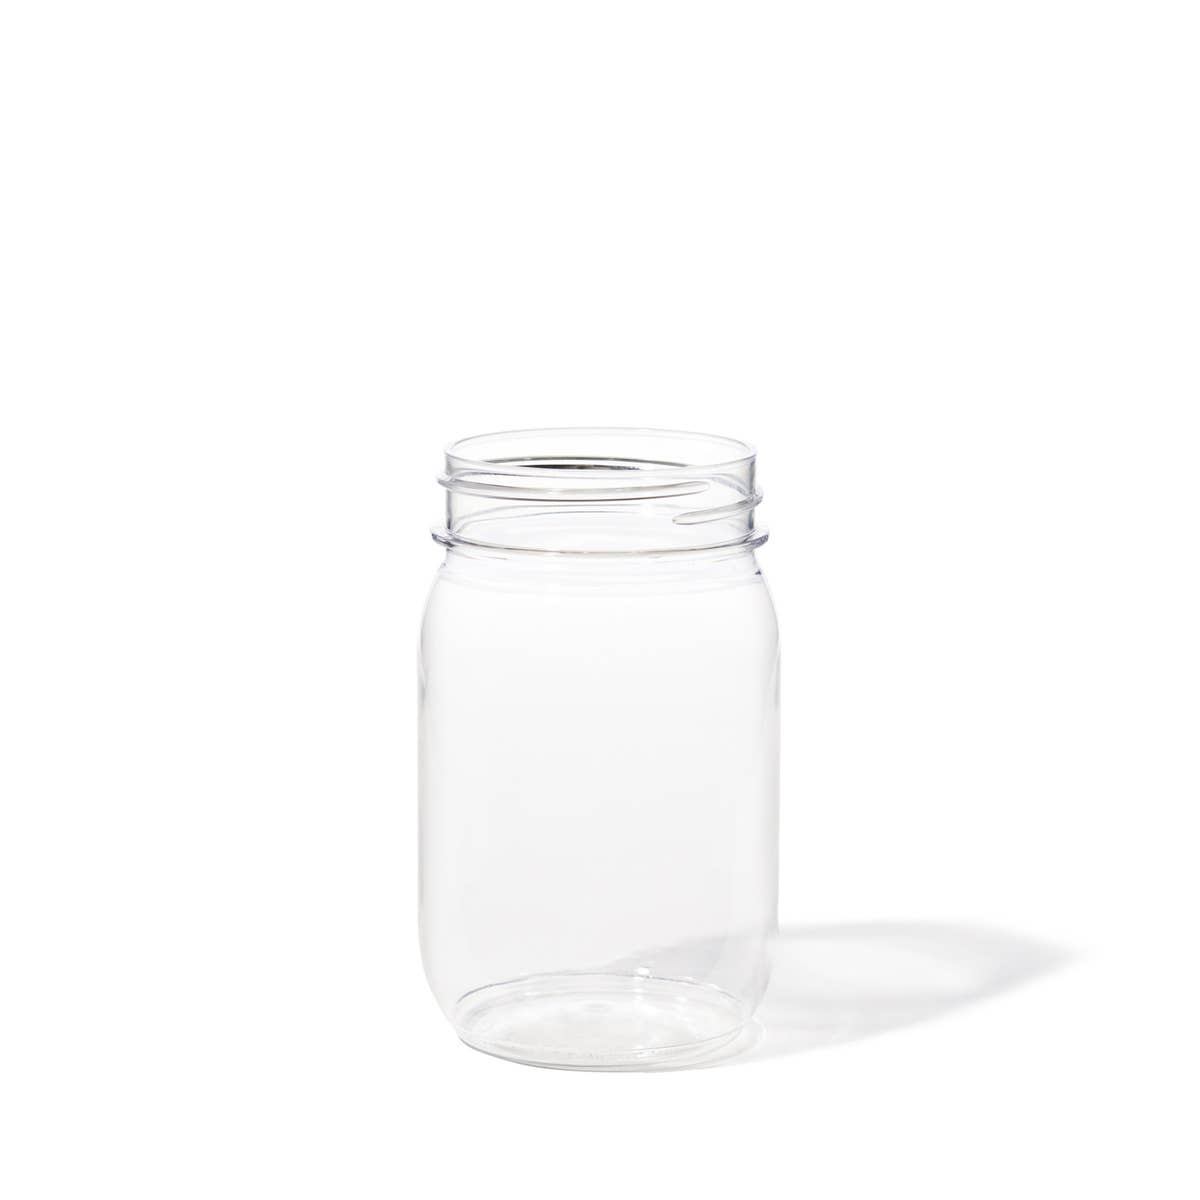 16oz Mason Jar (Pack of 2)